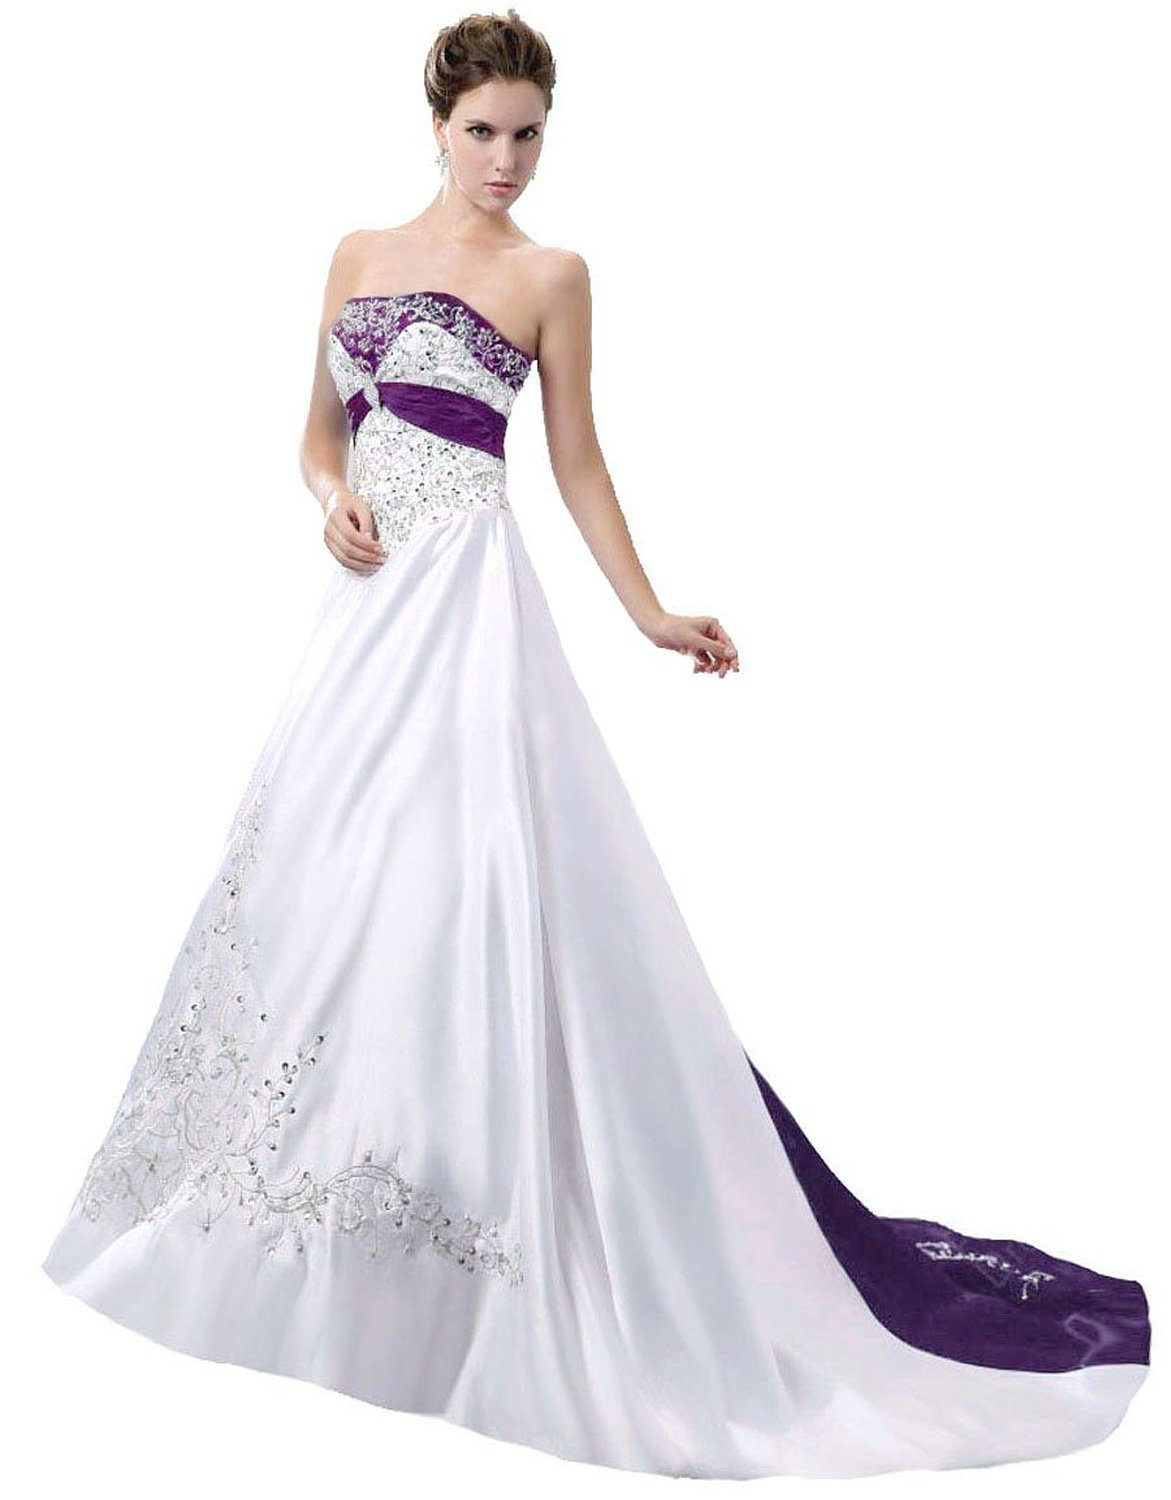 lavender wedding dresses gown purple and white wedding dresses wedding gown 5421